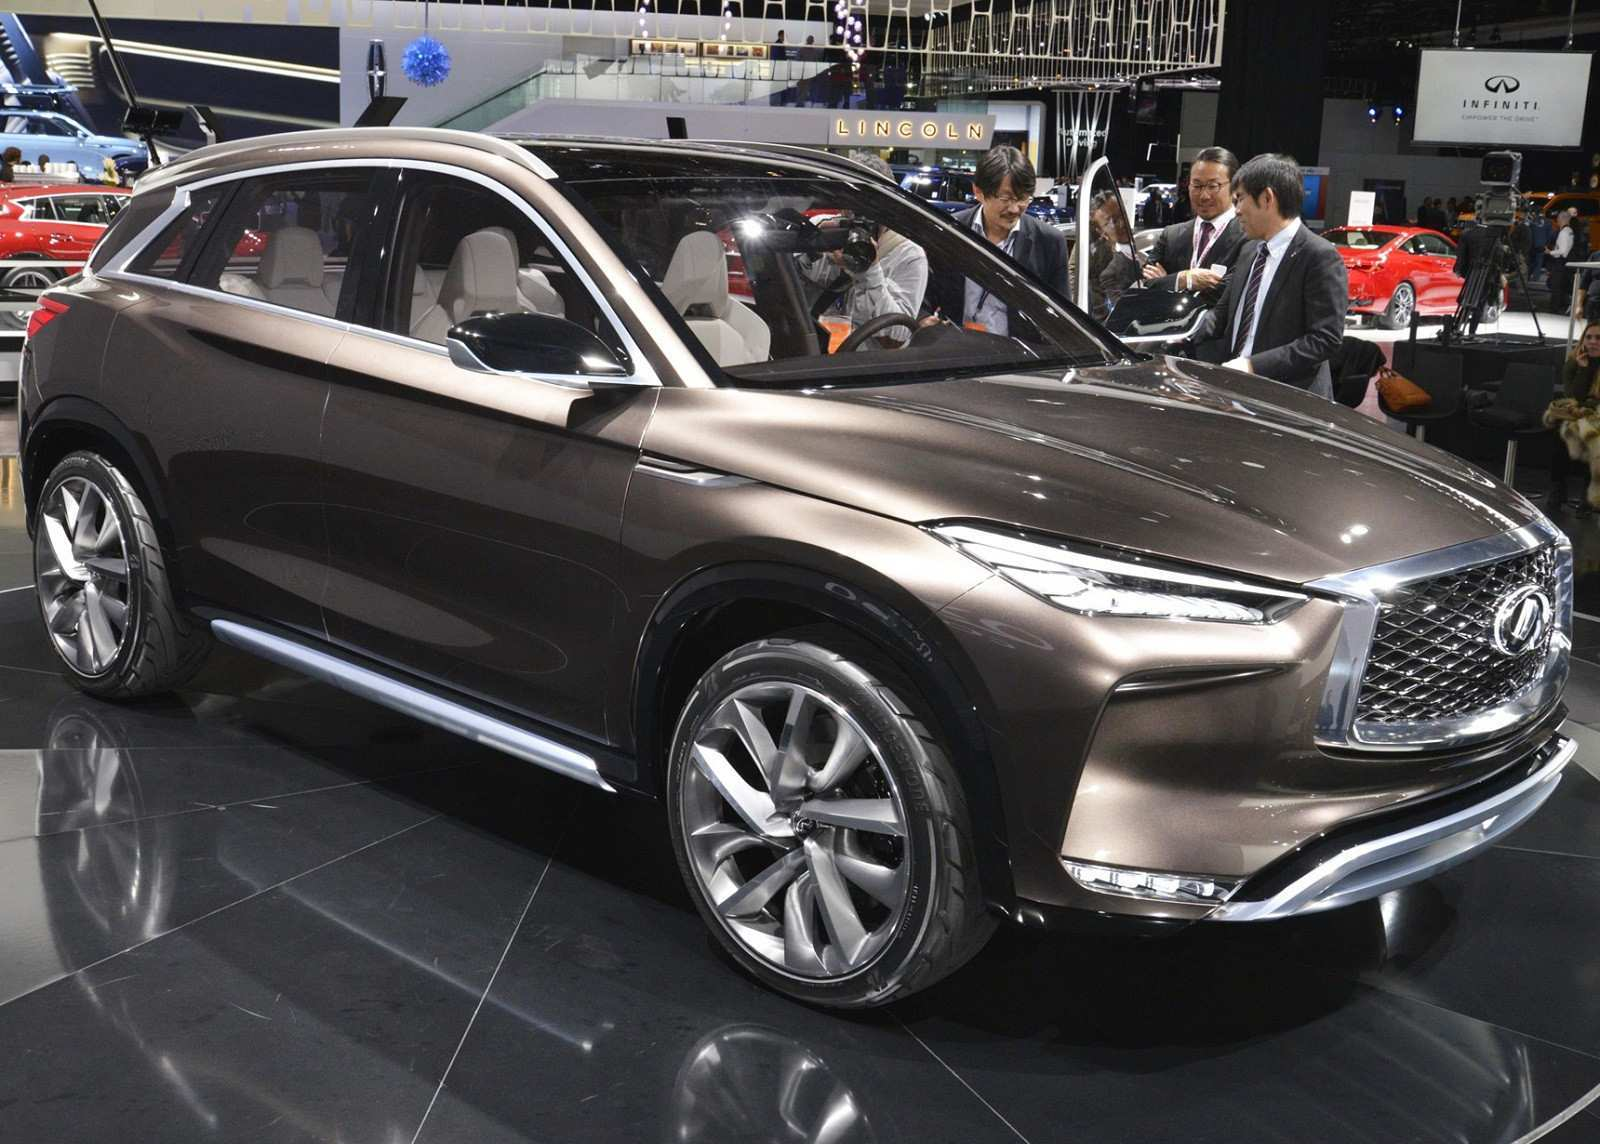 67 A 2020 Infiniti Cars Concept